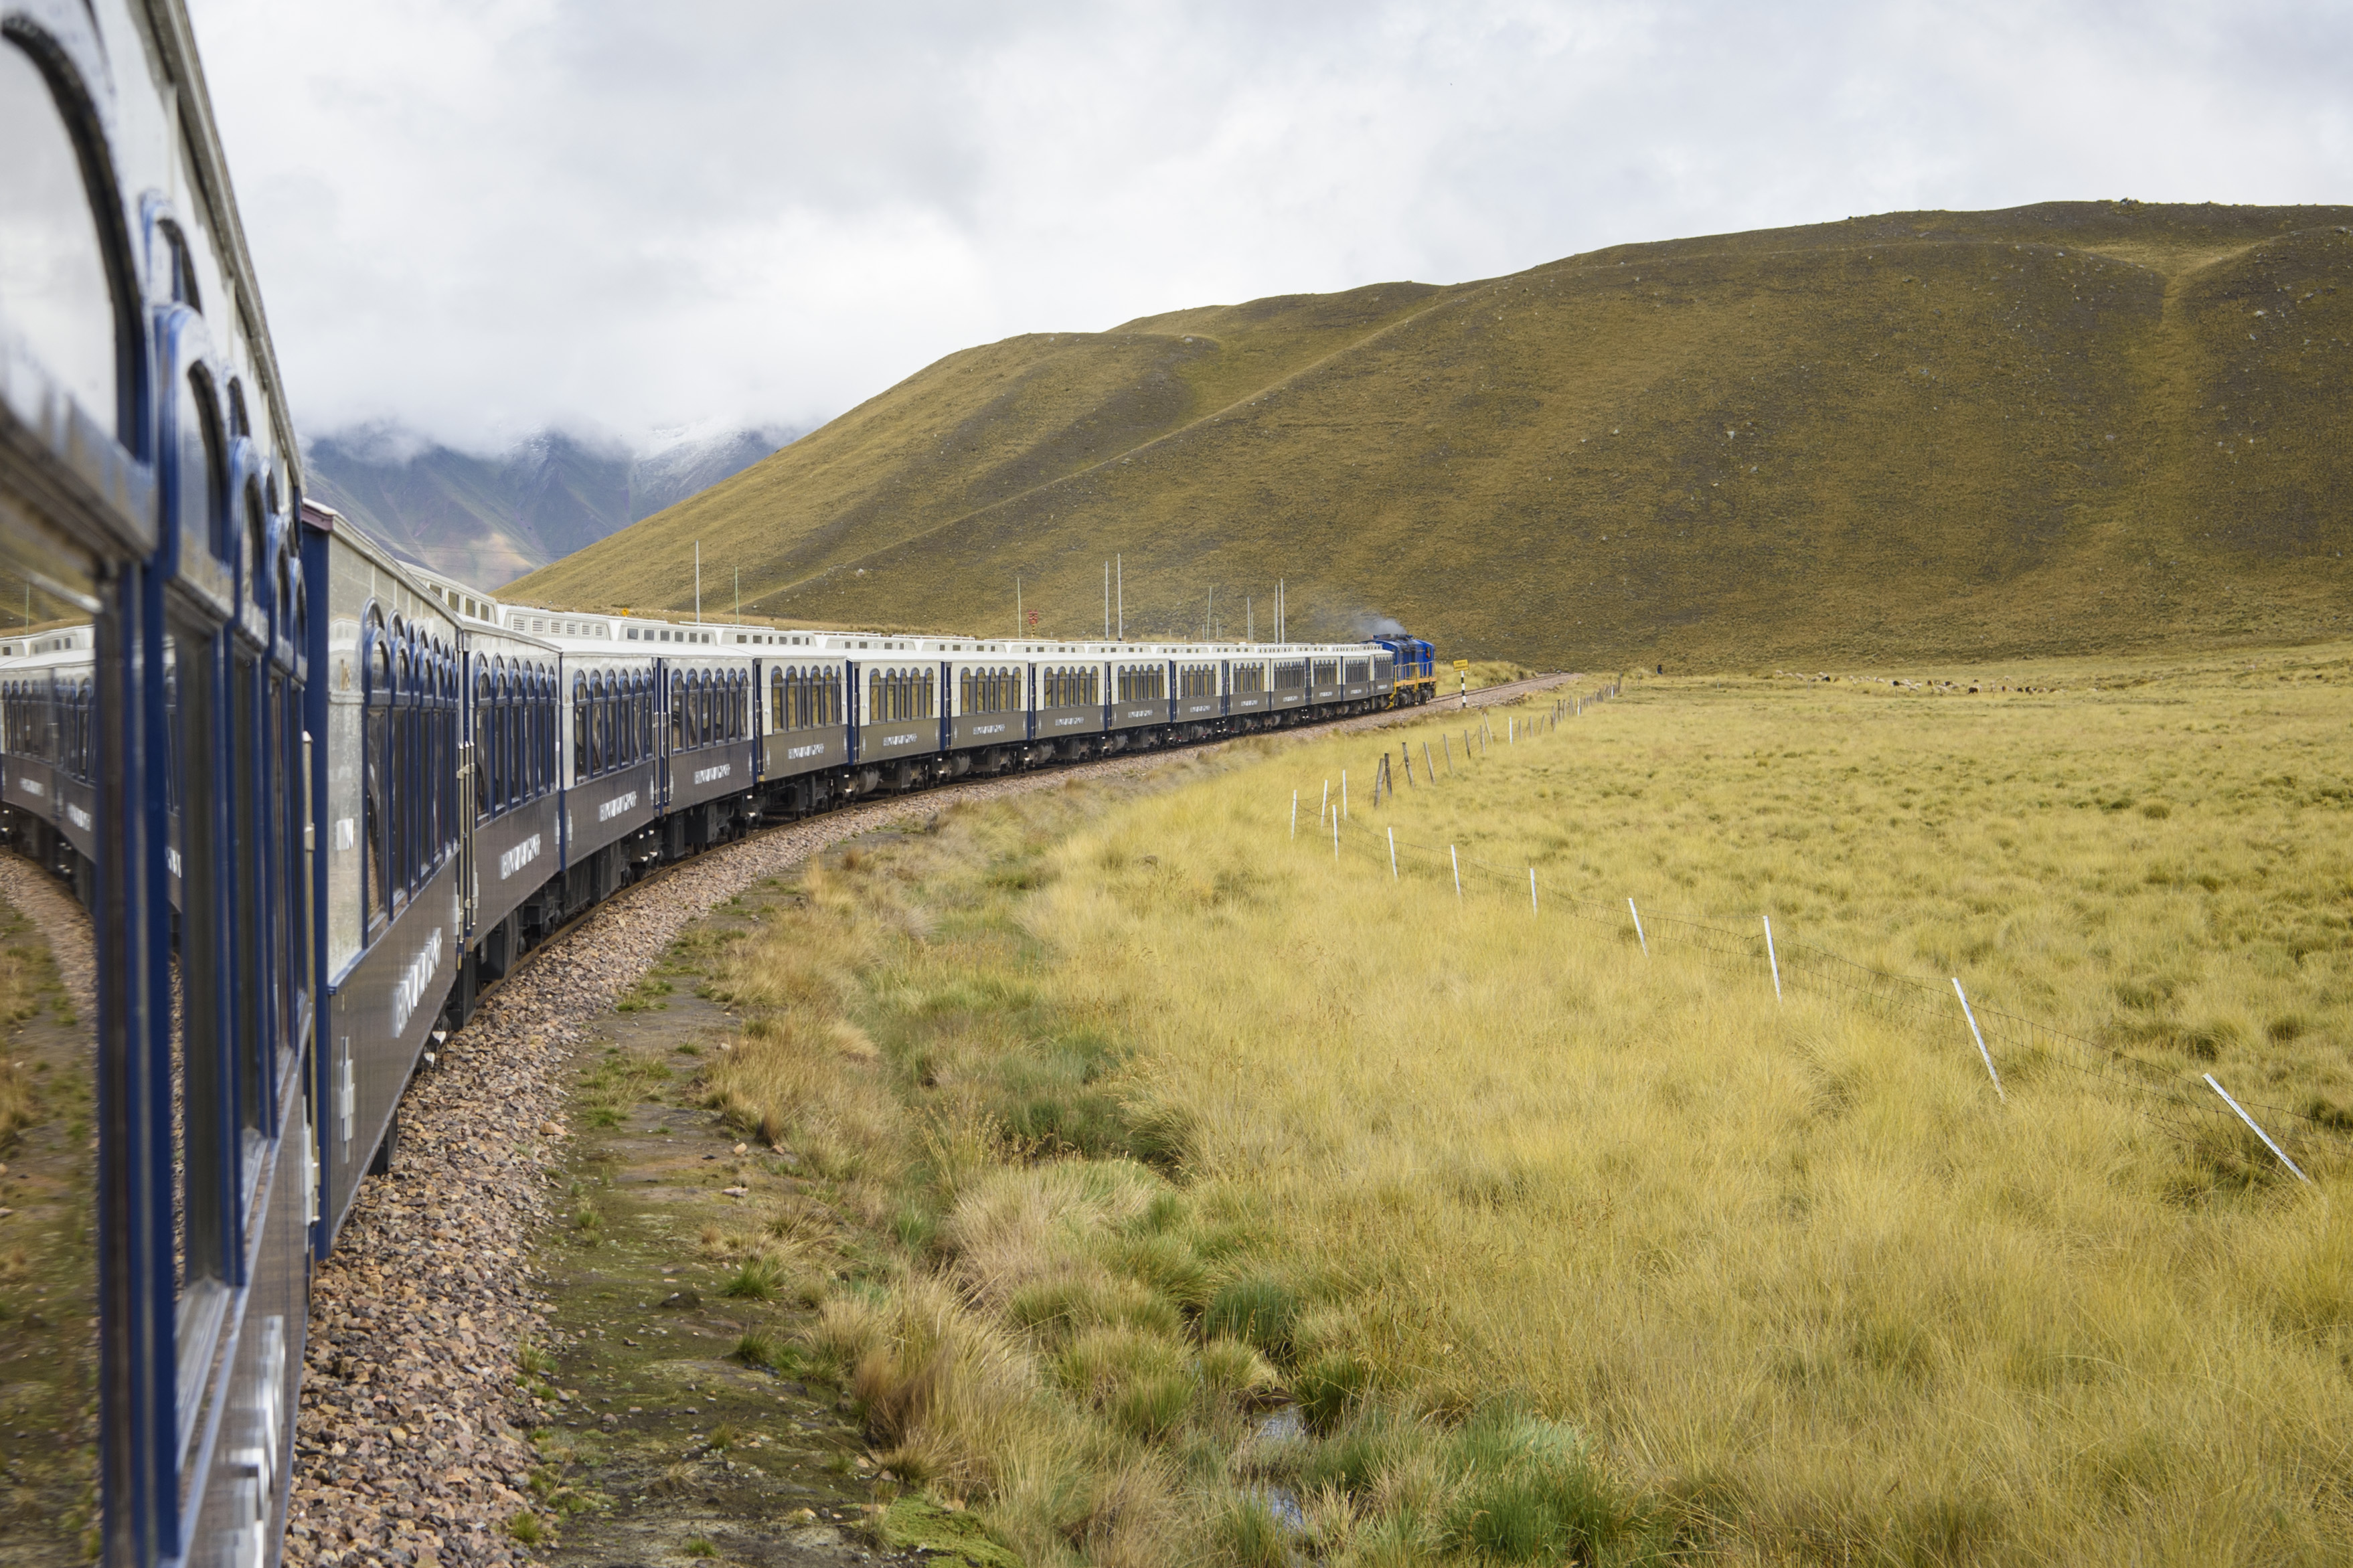 The Belmond Andean Explorer